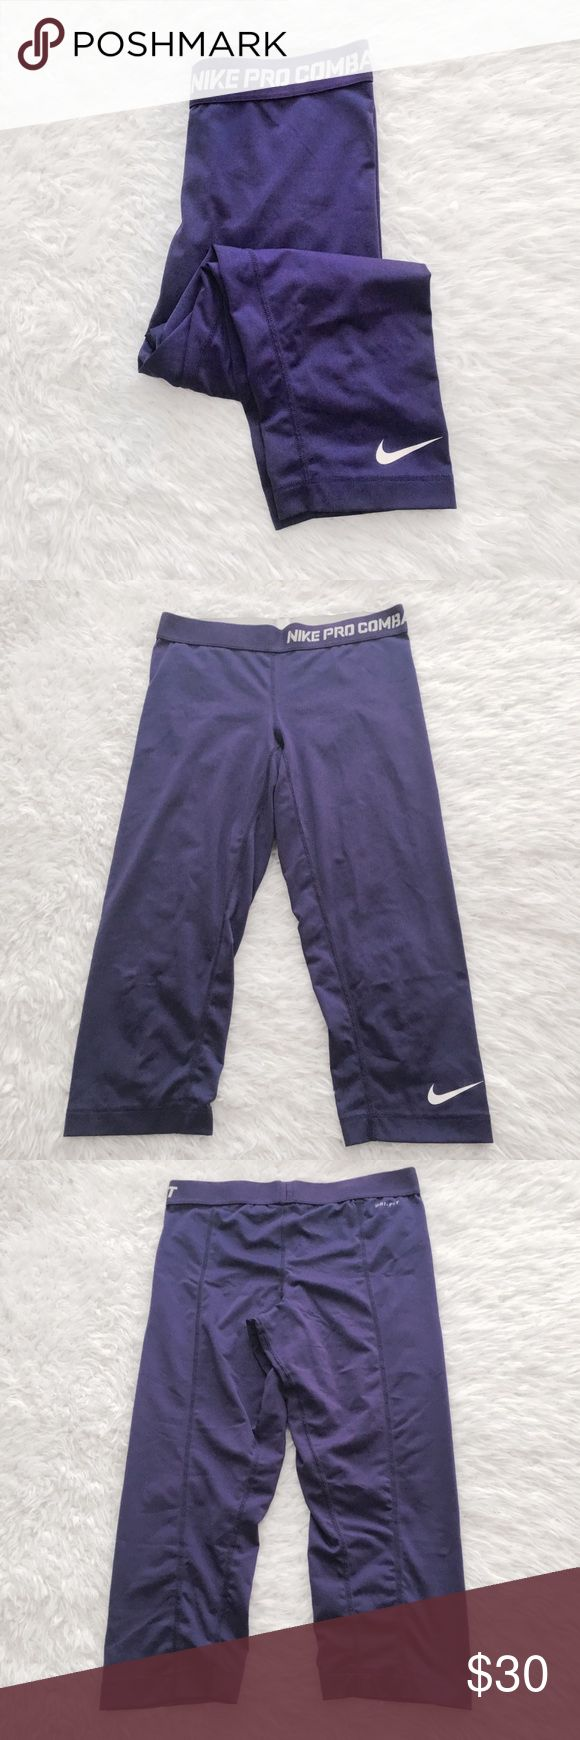 Nike Pro Crop Athletic Leggings Capri crop dri fit training pants. Small mark near the front waist.   •USE OFFER FEATURE TO NEGOTIATE  •BUNDLE TO SAVE  •NO OUTSIDE TRANSACTIONS •NO TRADES Nike Pants Capris